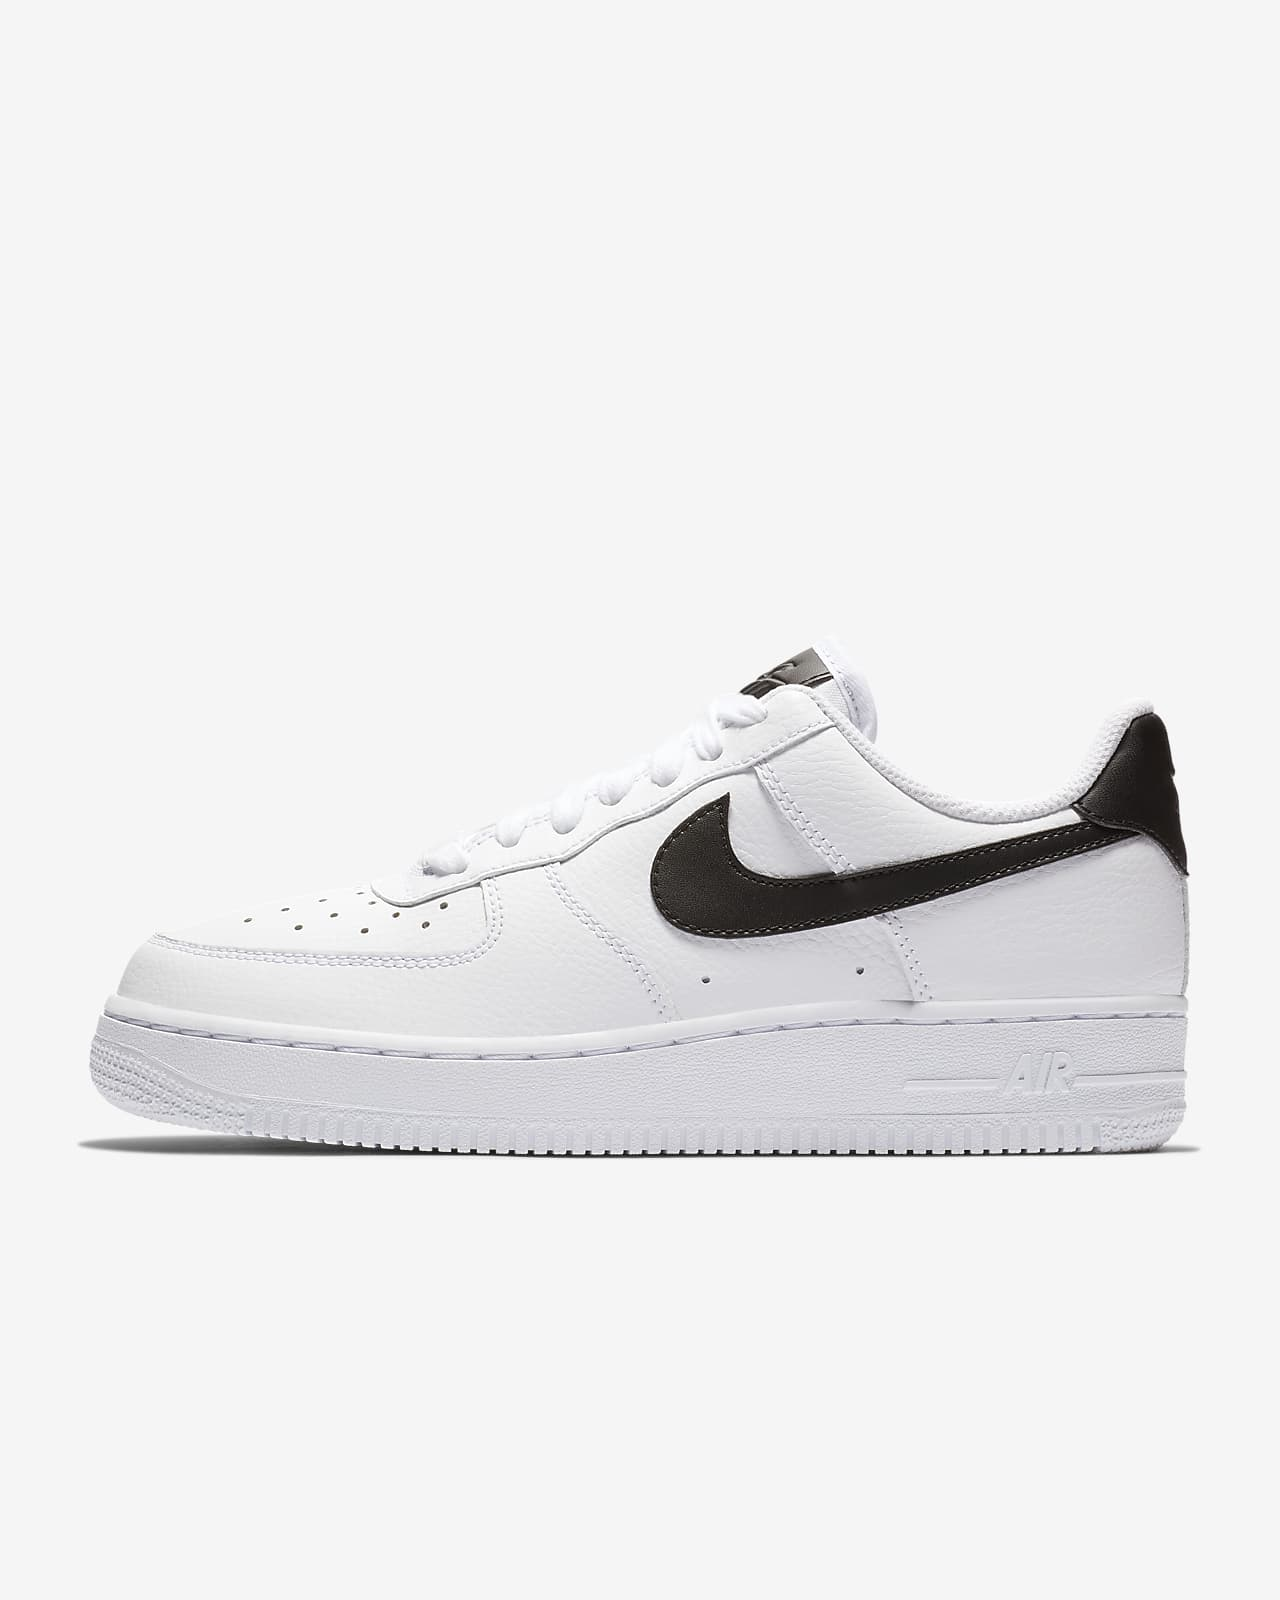 Nike Air Force 1 '07 Damenschuh